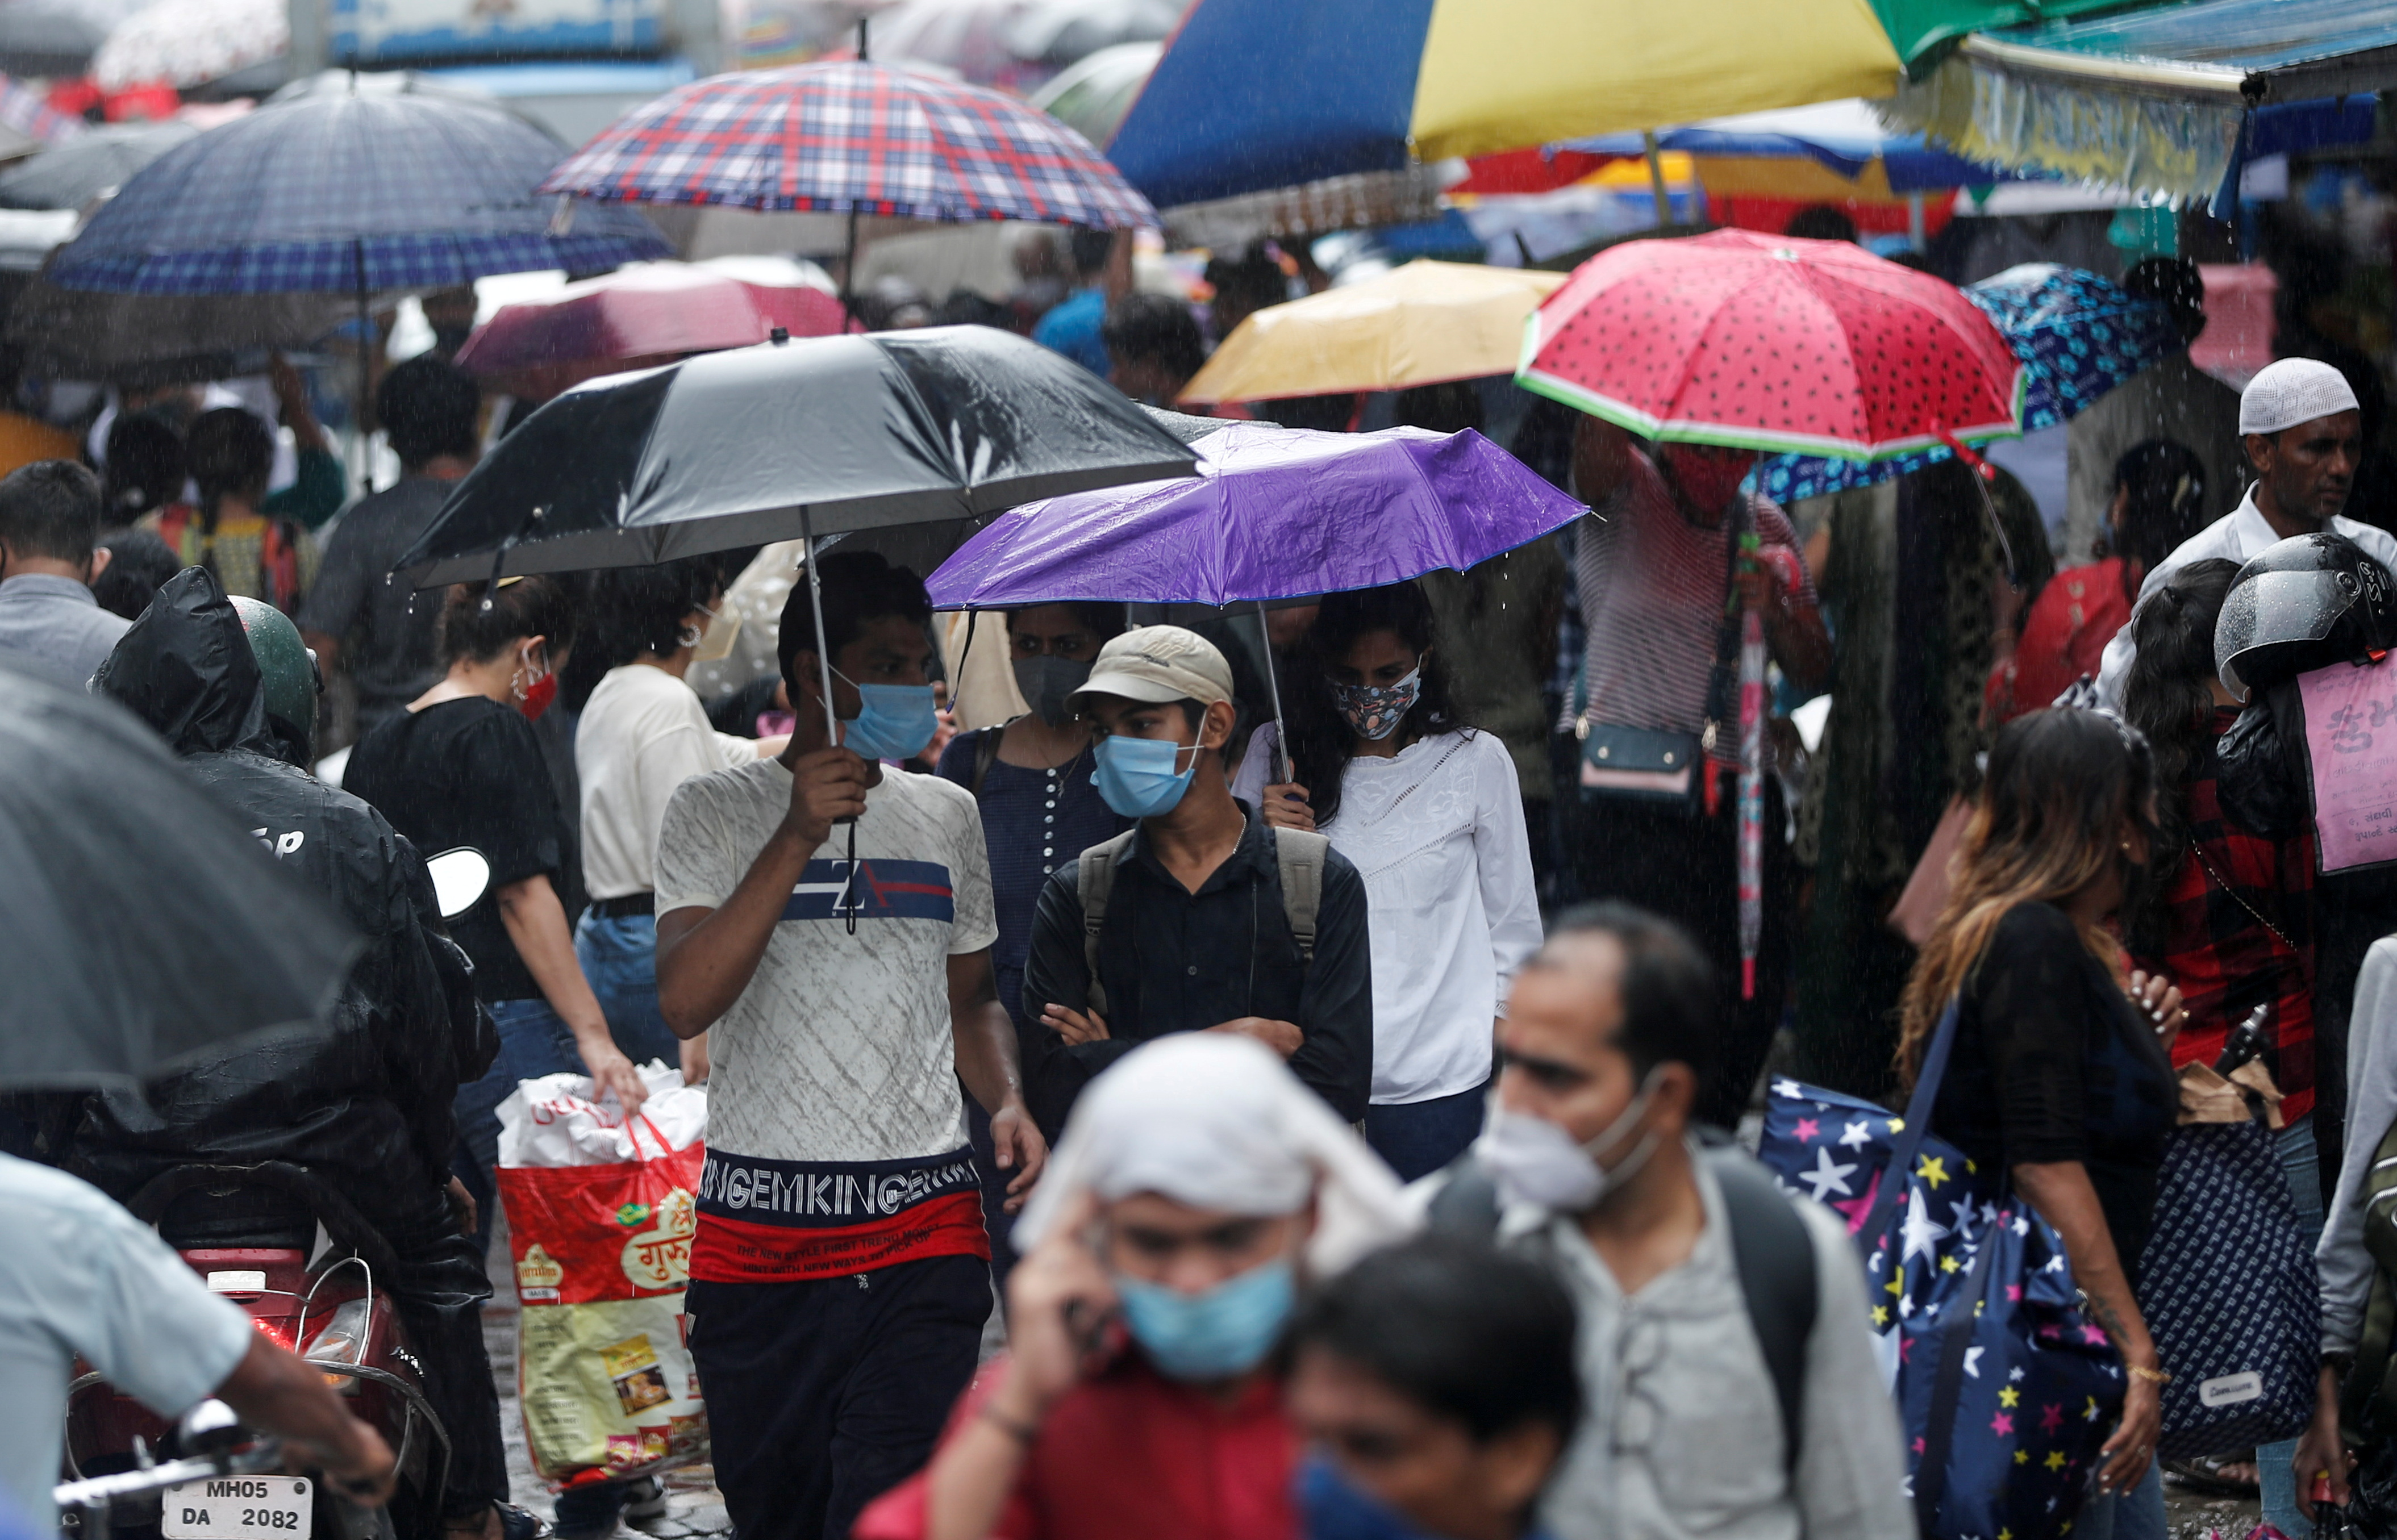 FILE PHOTO: People walk through a crowded market on a rainy day amidst the spread of the coronavirus disease (COVID-19) in Mumbai, India, July 14, 2021. REUTERS/Francis Mascarenhas/File Photo